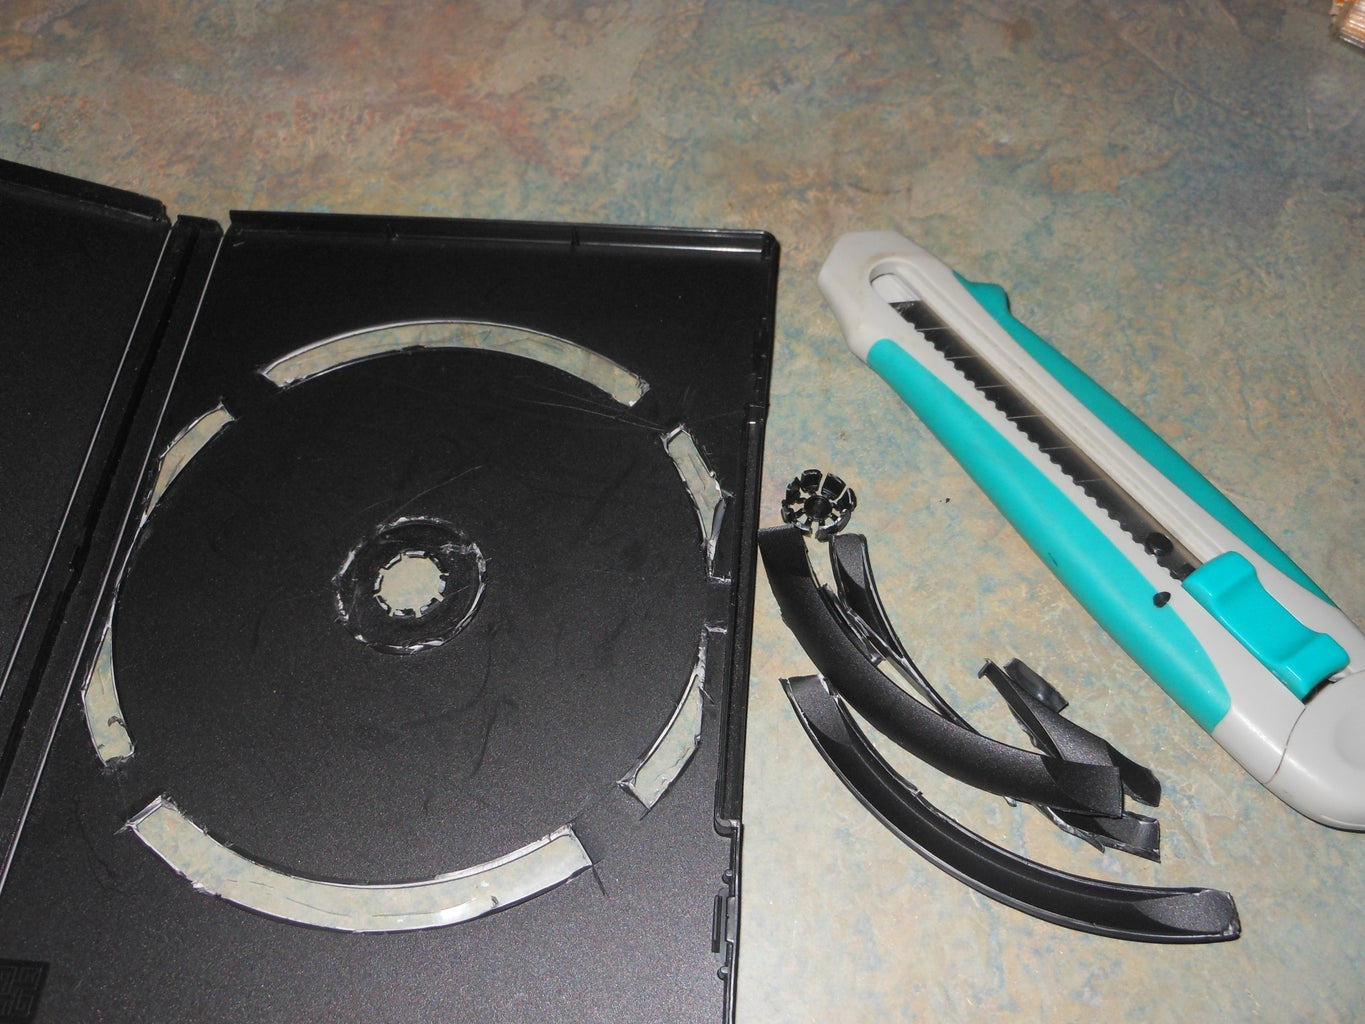 How to Make an Art Kit From a DVD Case